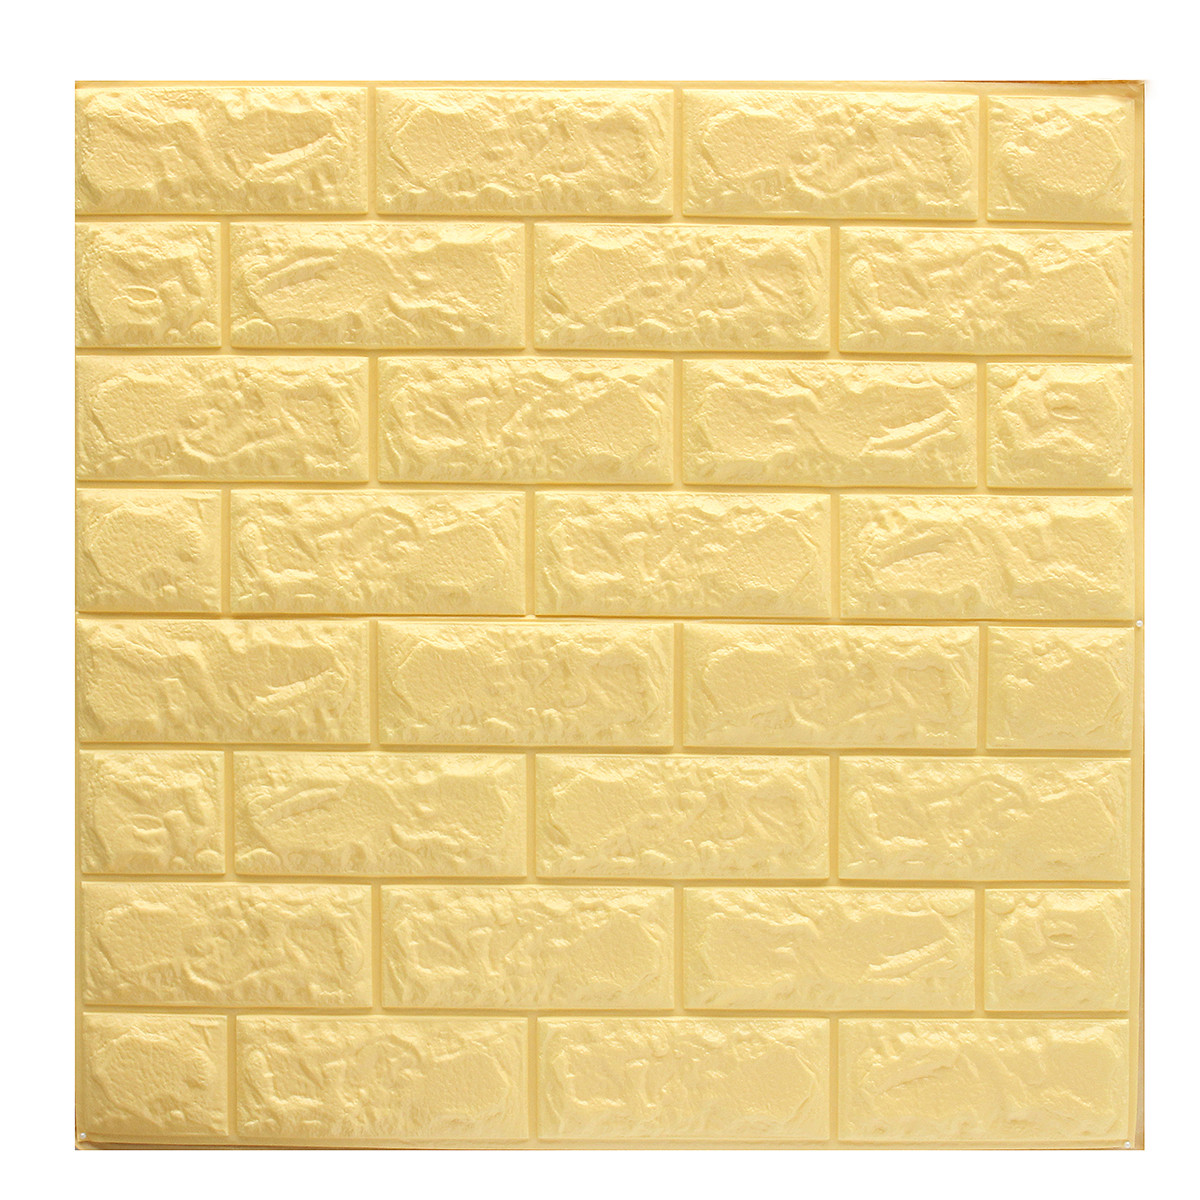 57sq.ft Roll Wall Paper Removable Waterproof 3D Embossed Effect Brick Stone Wall Sticker Vinyl Wallpaper / Wall Decal / TV Walls / TV Background 393.7'' x 21''